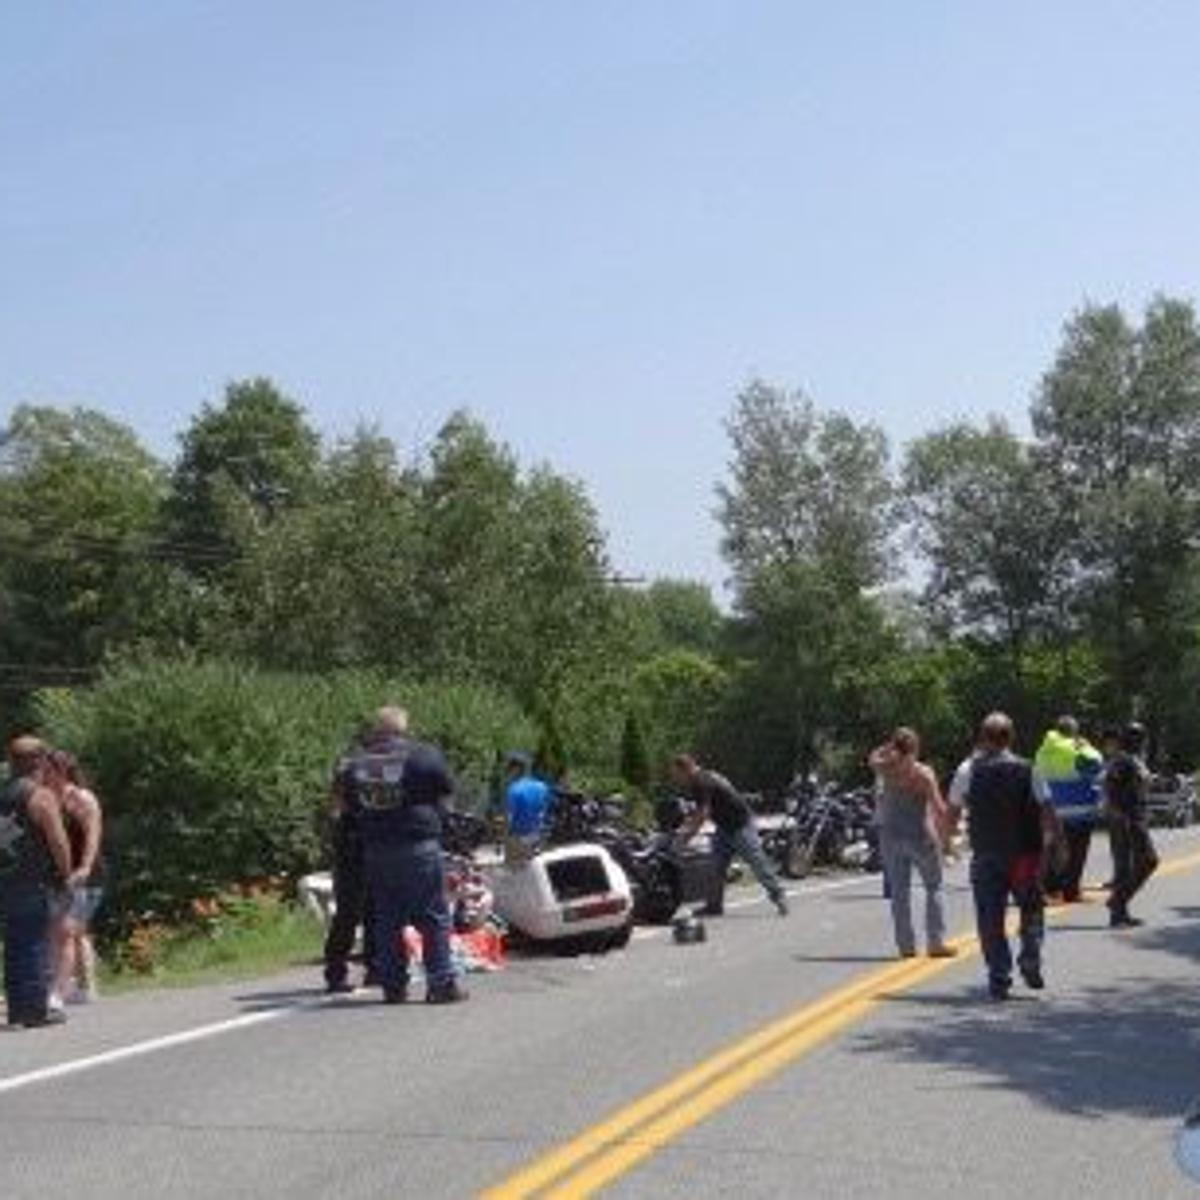 UPDATED: Whitehall man airlifted after Route 8 motorcycle